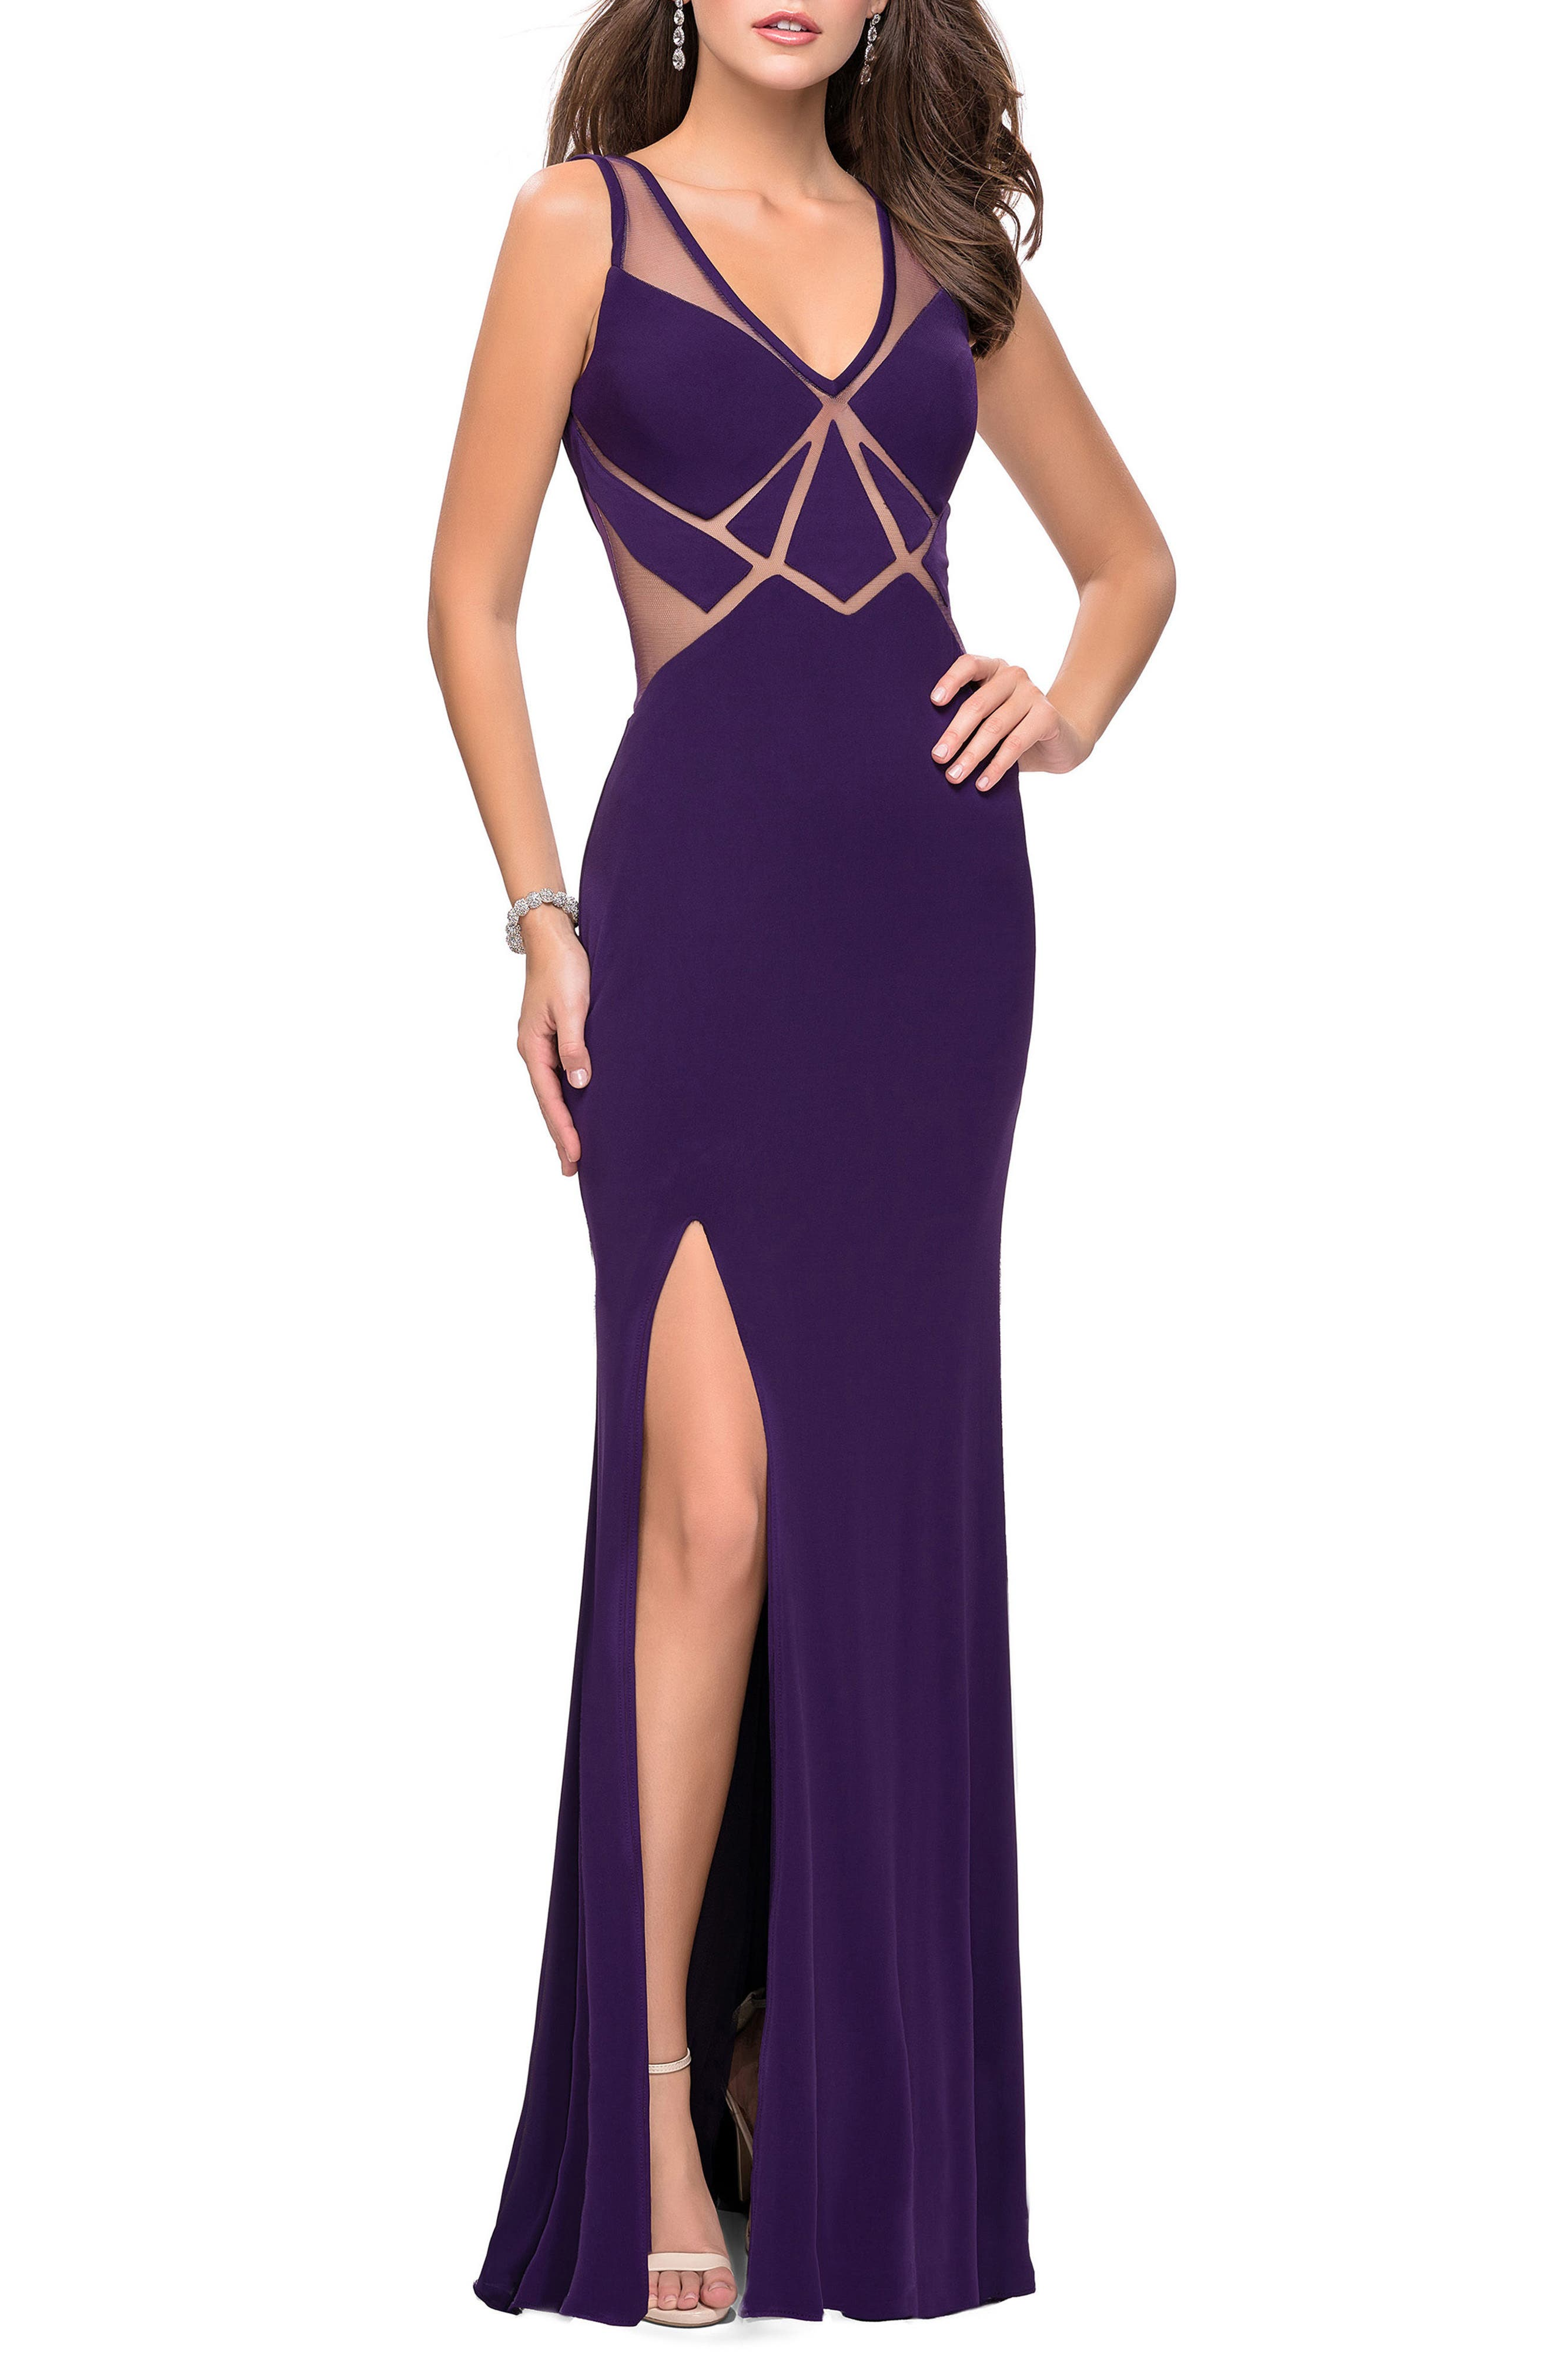 Geometric Cutout Jersey Gown,                         Main,                         color, 501